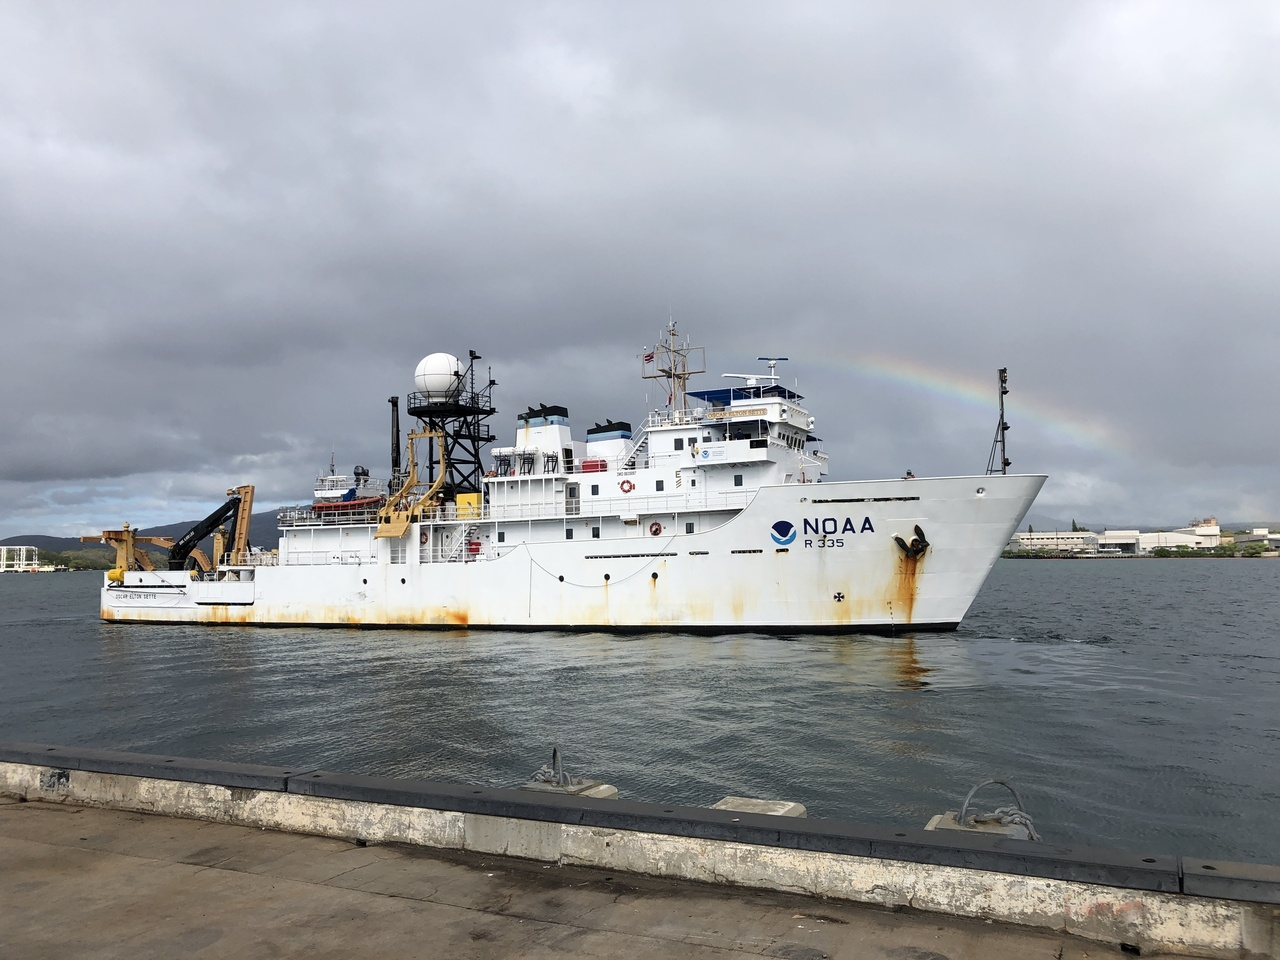 Our project has reached its halfway point. The Sette returned to Honolulu on Wednesday, February 12th to replenish supplies and provide a few days of rest to the crew, then returned to sea on Monday, February 17th to continue the survey effort. Photo: NOAA Fisheries/Kymberly Yano.